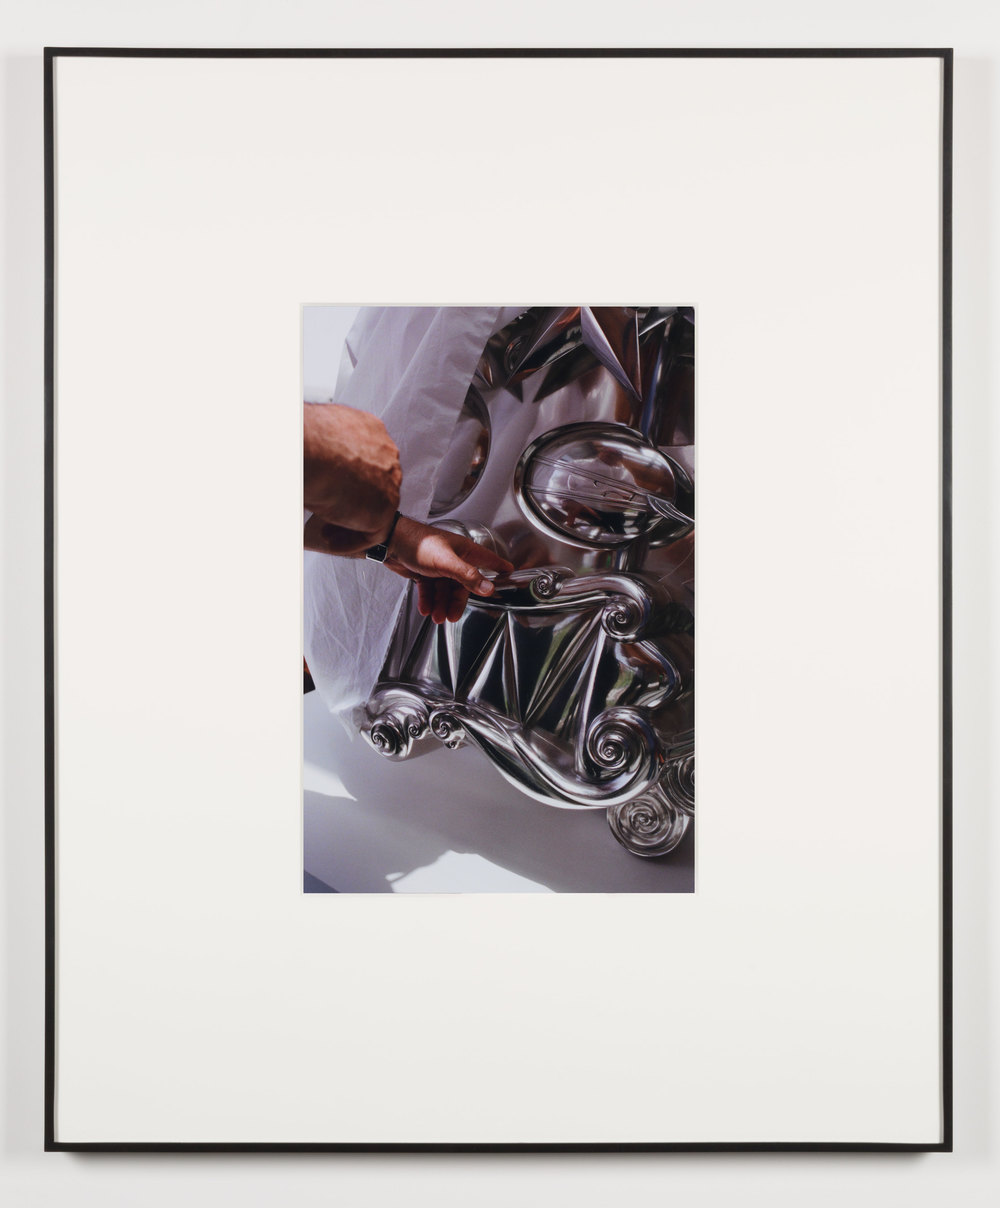 Die Supermutter (Beirut, Lebanon, June 1, 2013), Frame No. 15    2014   Chromogenic print  20 x 13 1/2 inches   Art Handling, 2011–